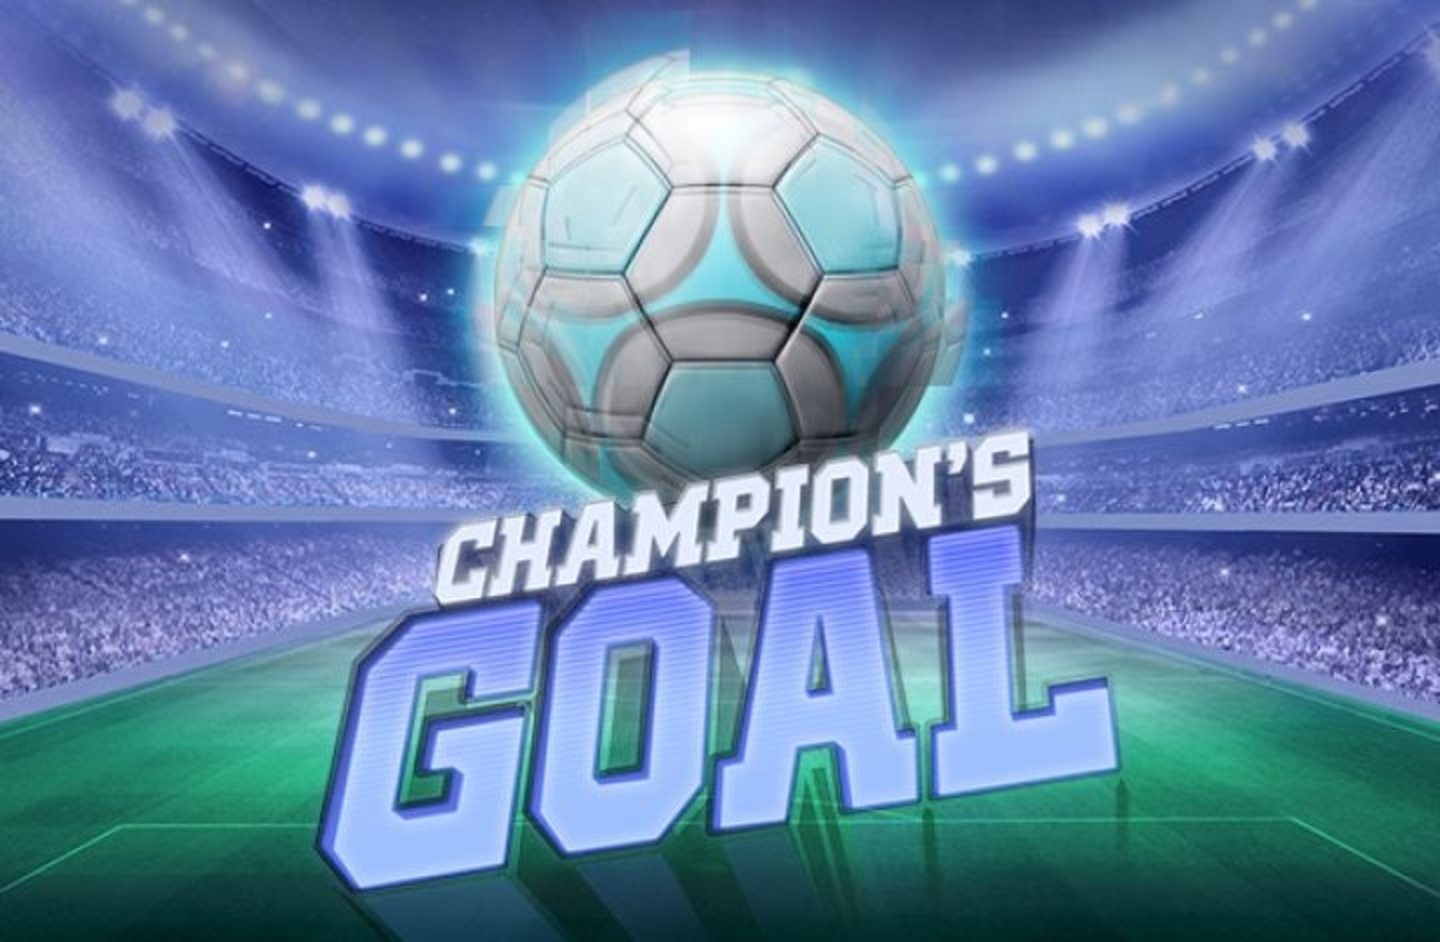 The Champion's Goal Online Slot Demo Game by ELK Studios